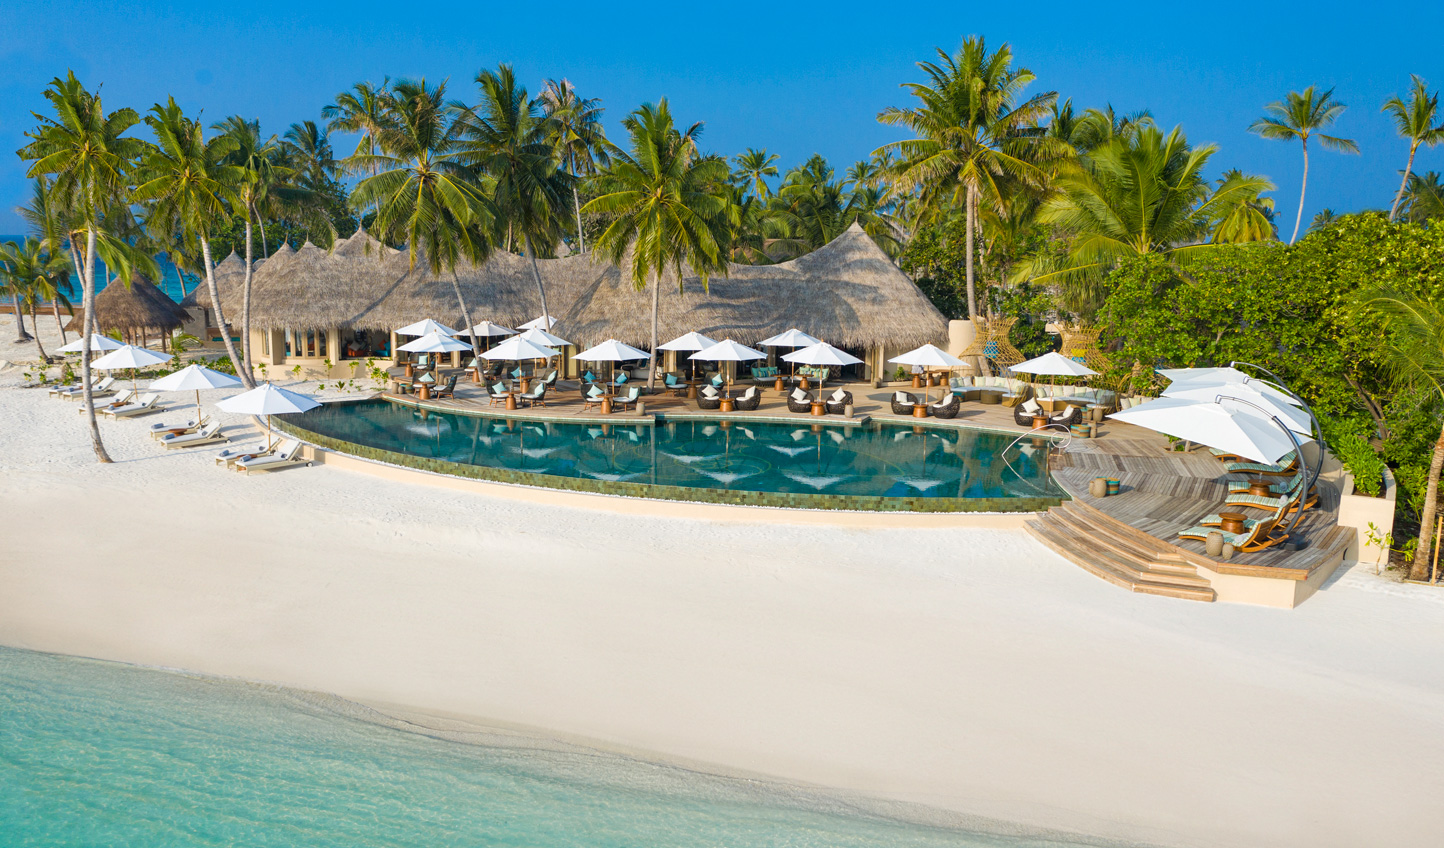 Relax by the pool or stroll along the pristine sands